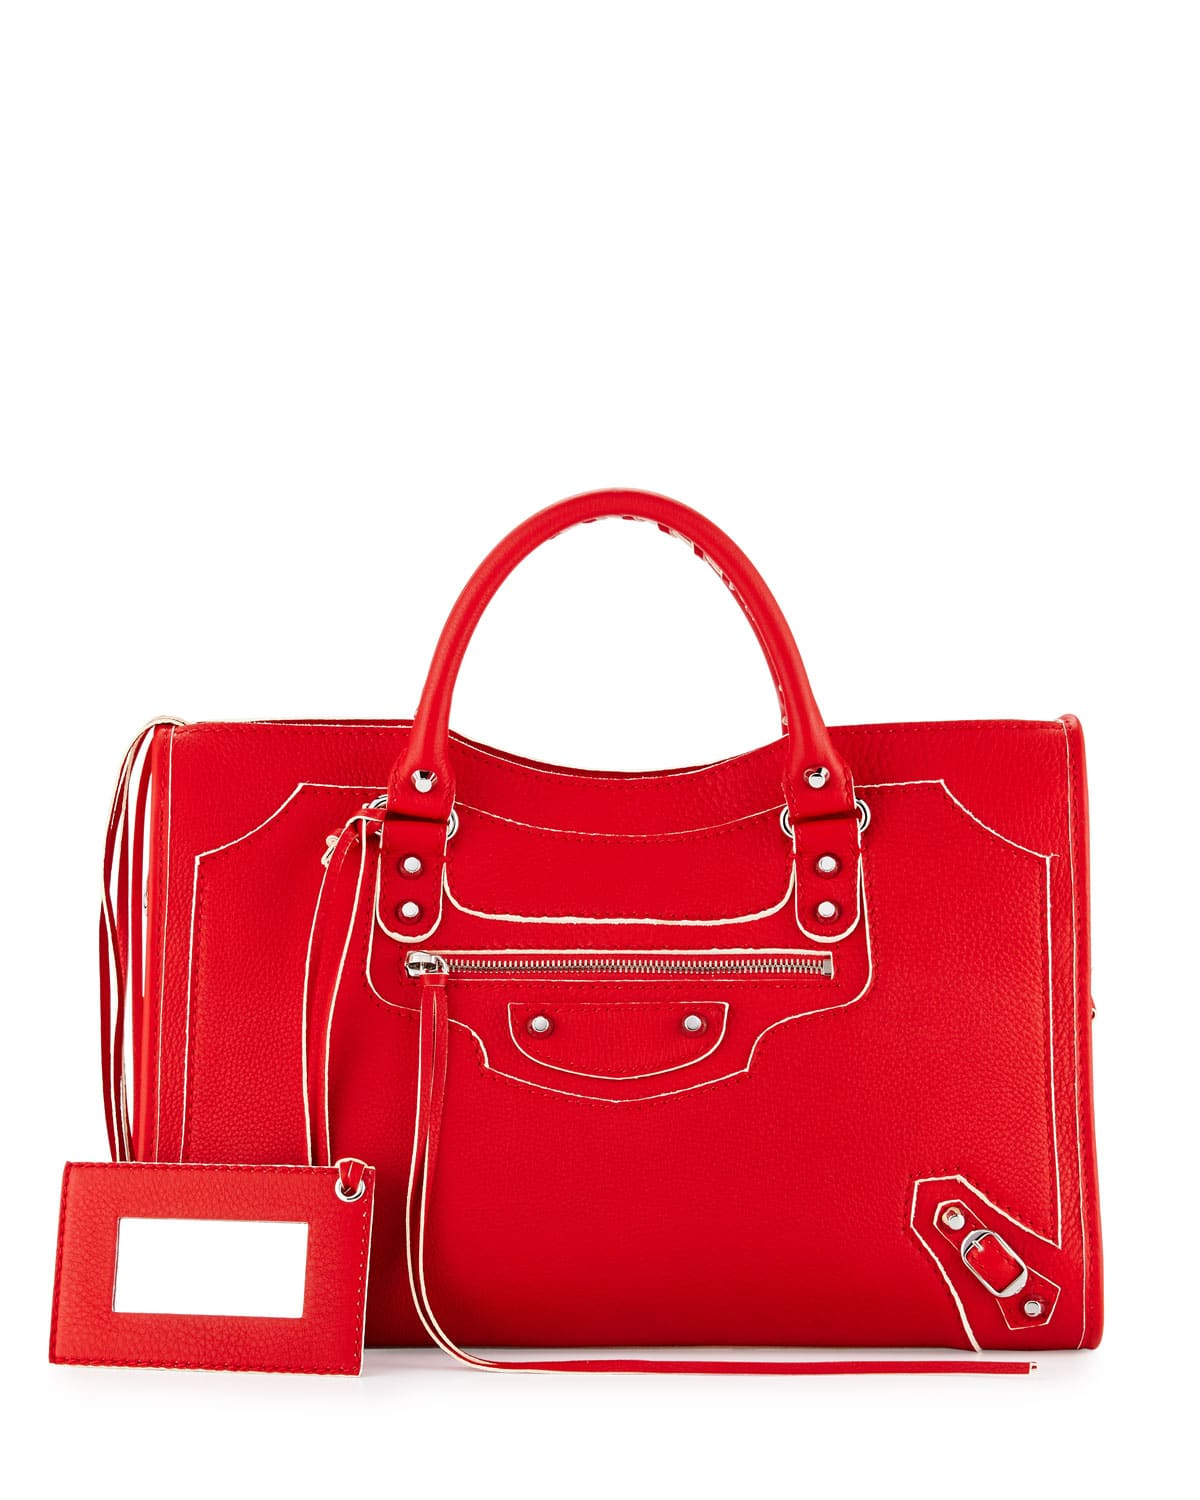 Balenciaga Red Highlight City Bag